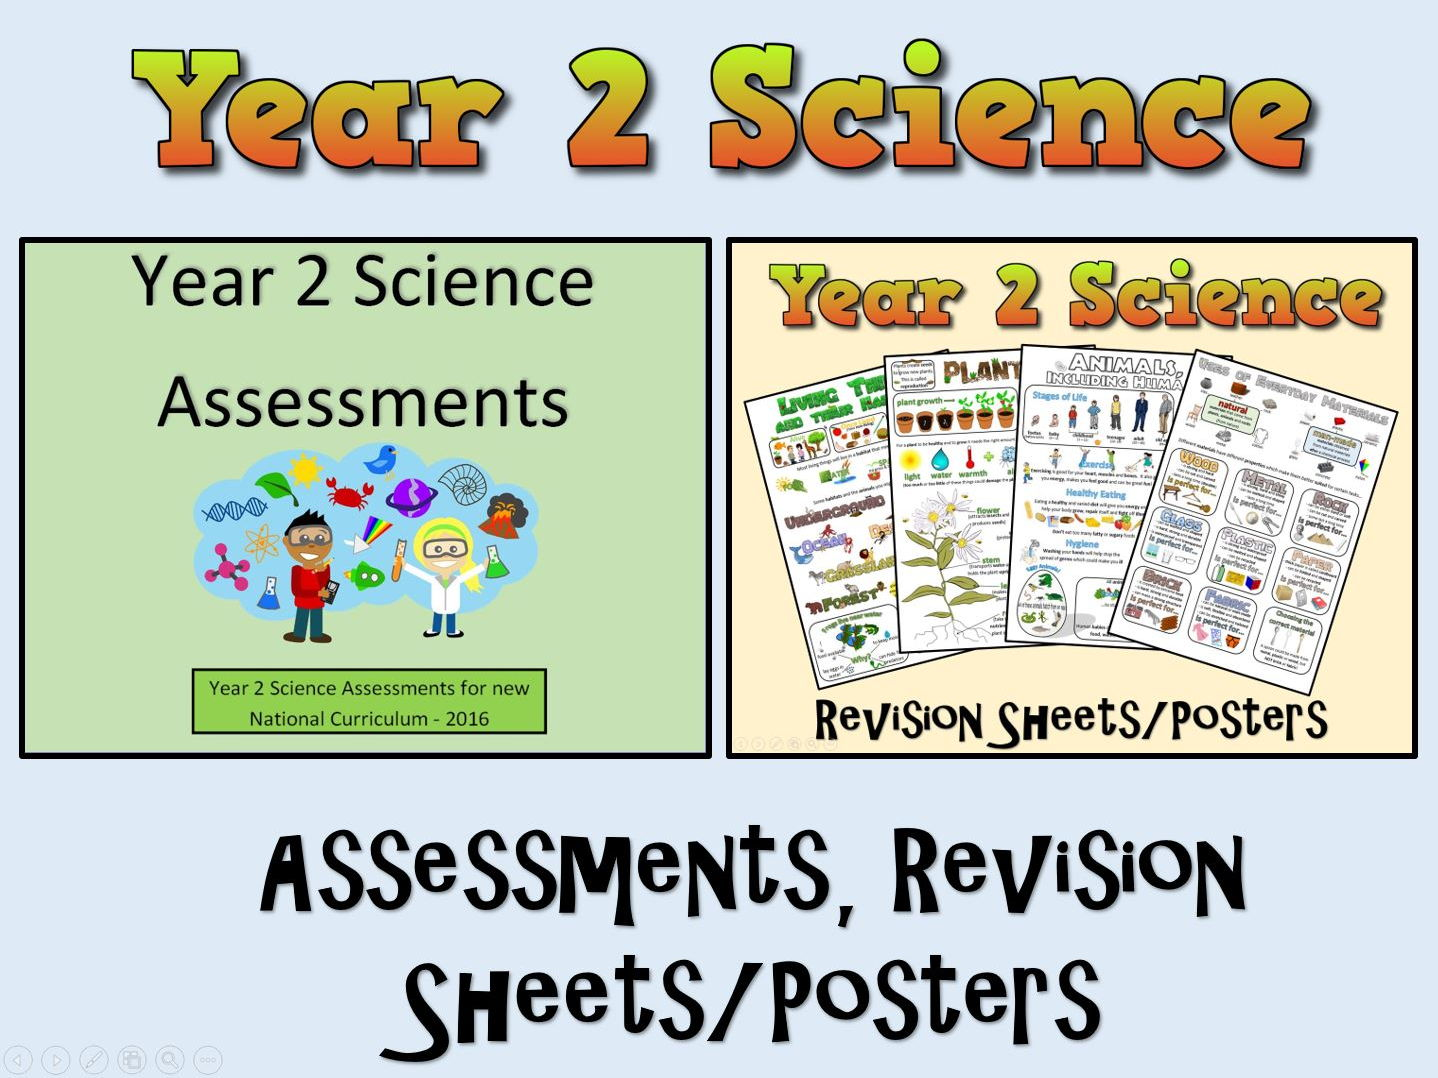 Year 2 Science Assessments + Posters/Revision Sheets